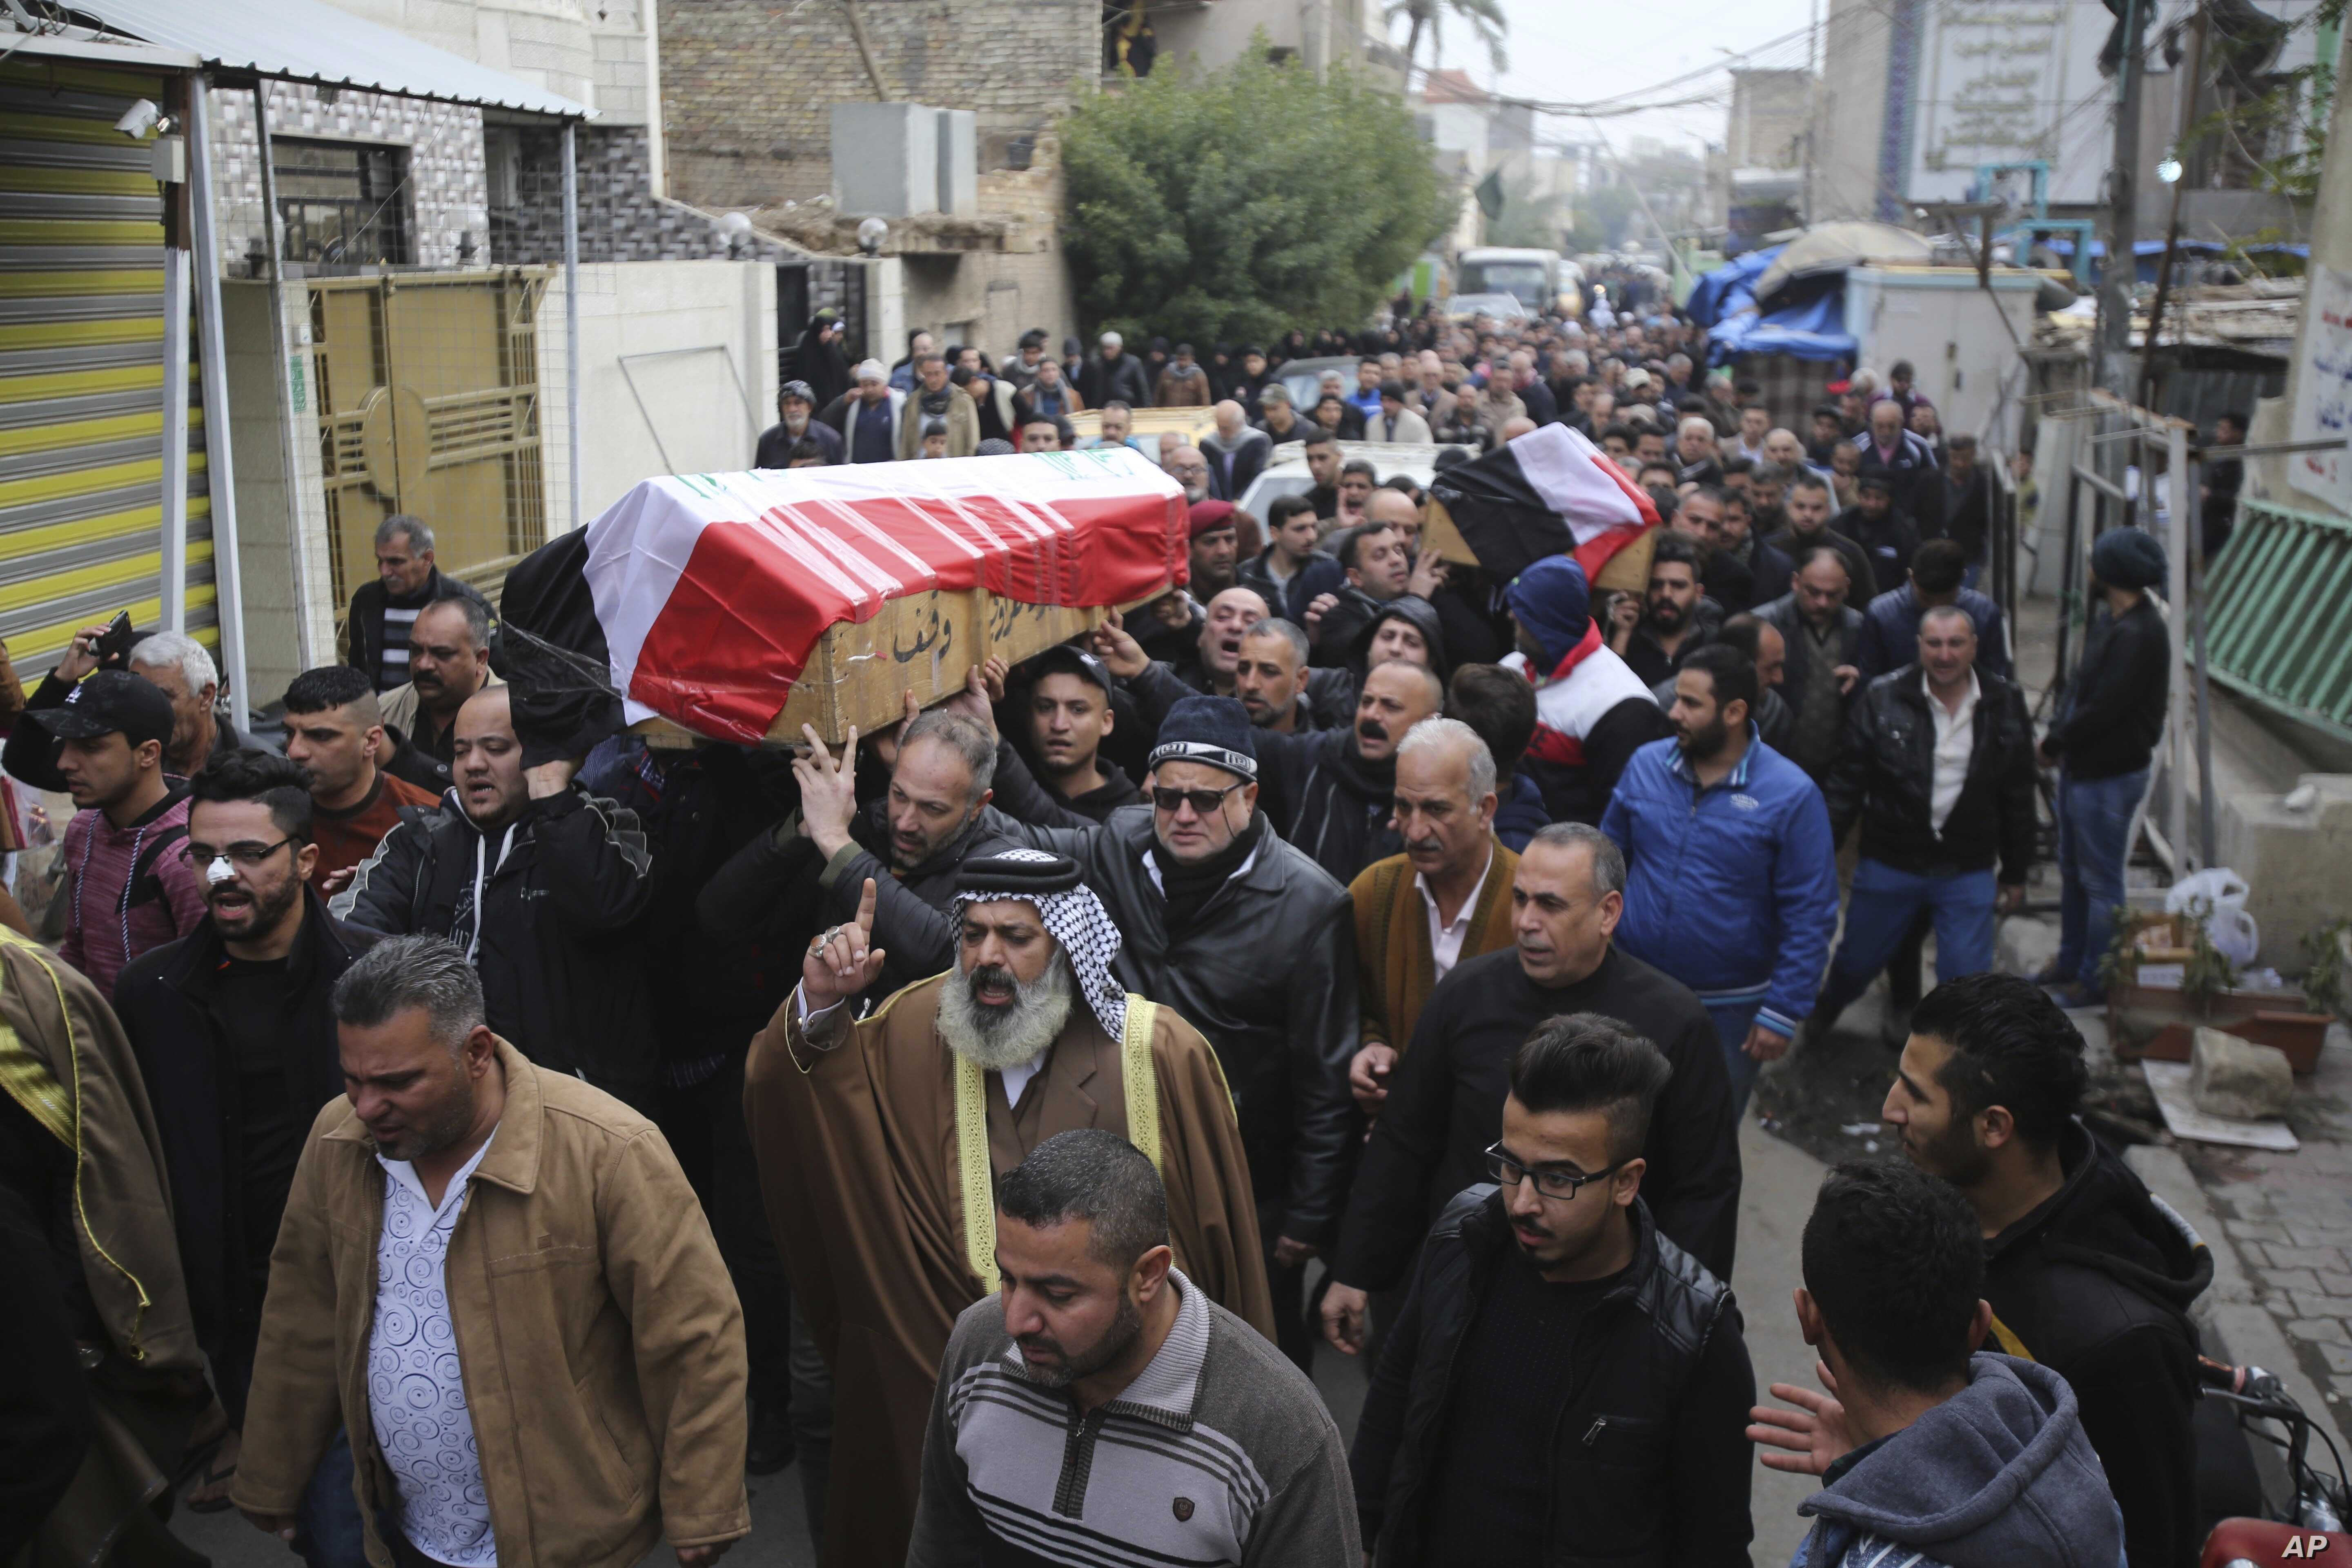 Mourners carry the Iraqi flag-draped coffins of bomb victims Arif Muhanad, 36, and his son, Muhanad, 8, during their funeral procession in Baghdad, Iraq, Dec 31, 2016. A pair of bomb blasts targeting a market Saturday in central Baghdad killed and wo...